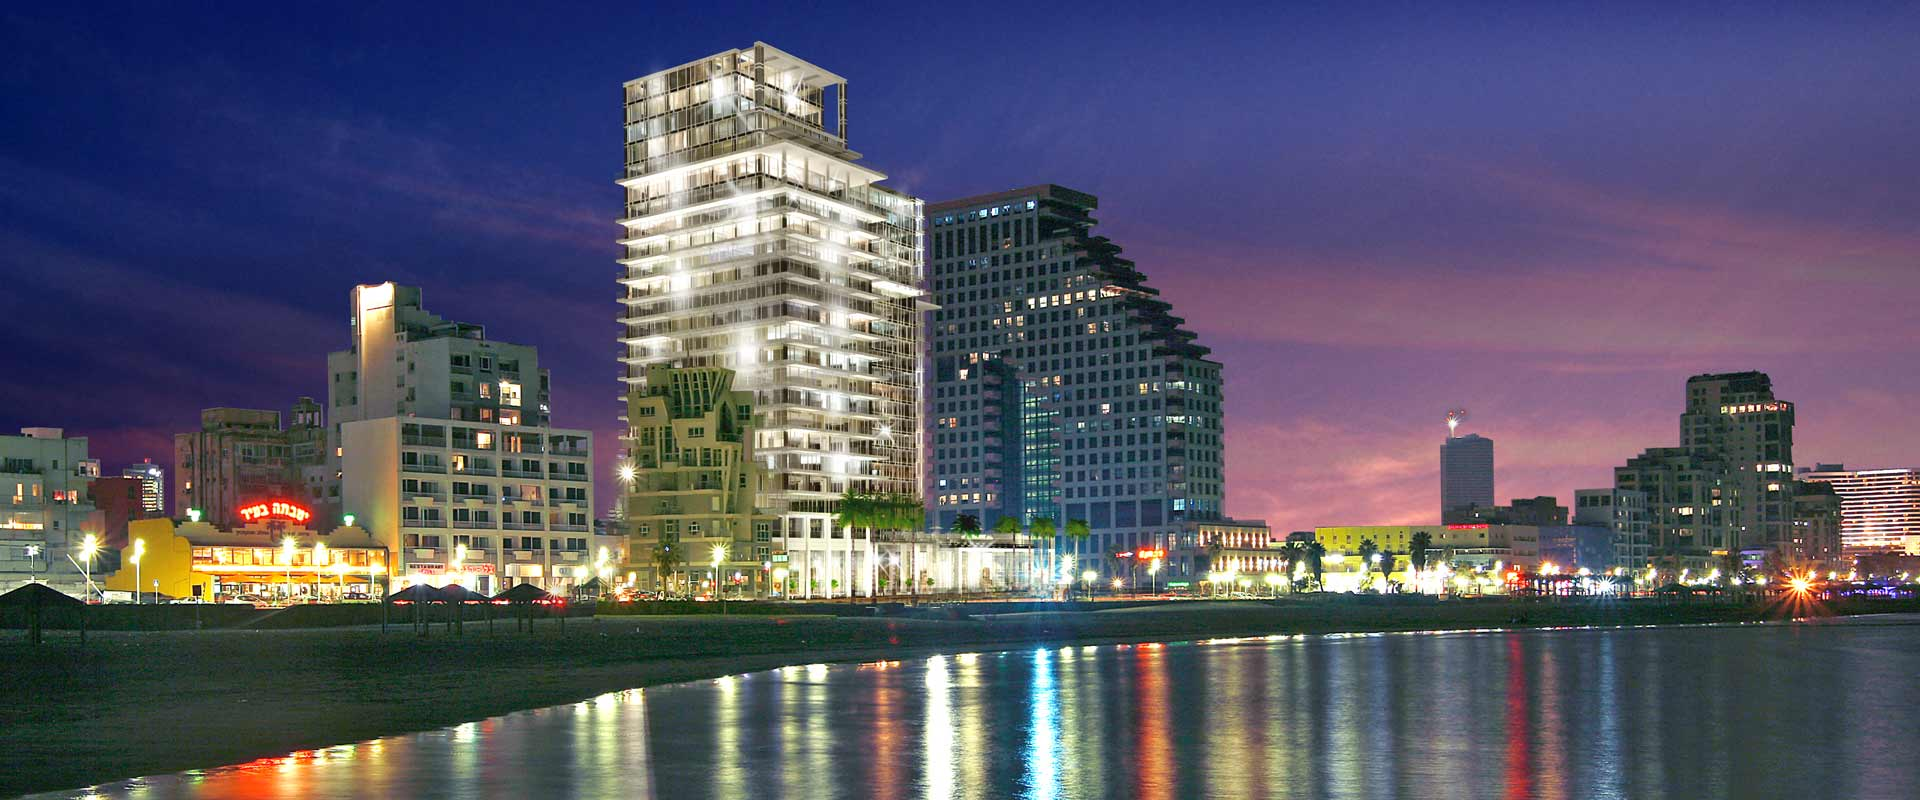 Overview of the David Promenade Residences and the David Hotel Kempinski